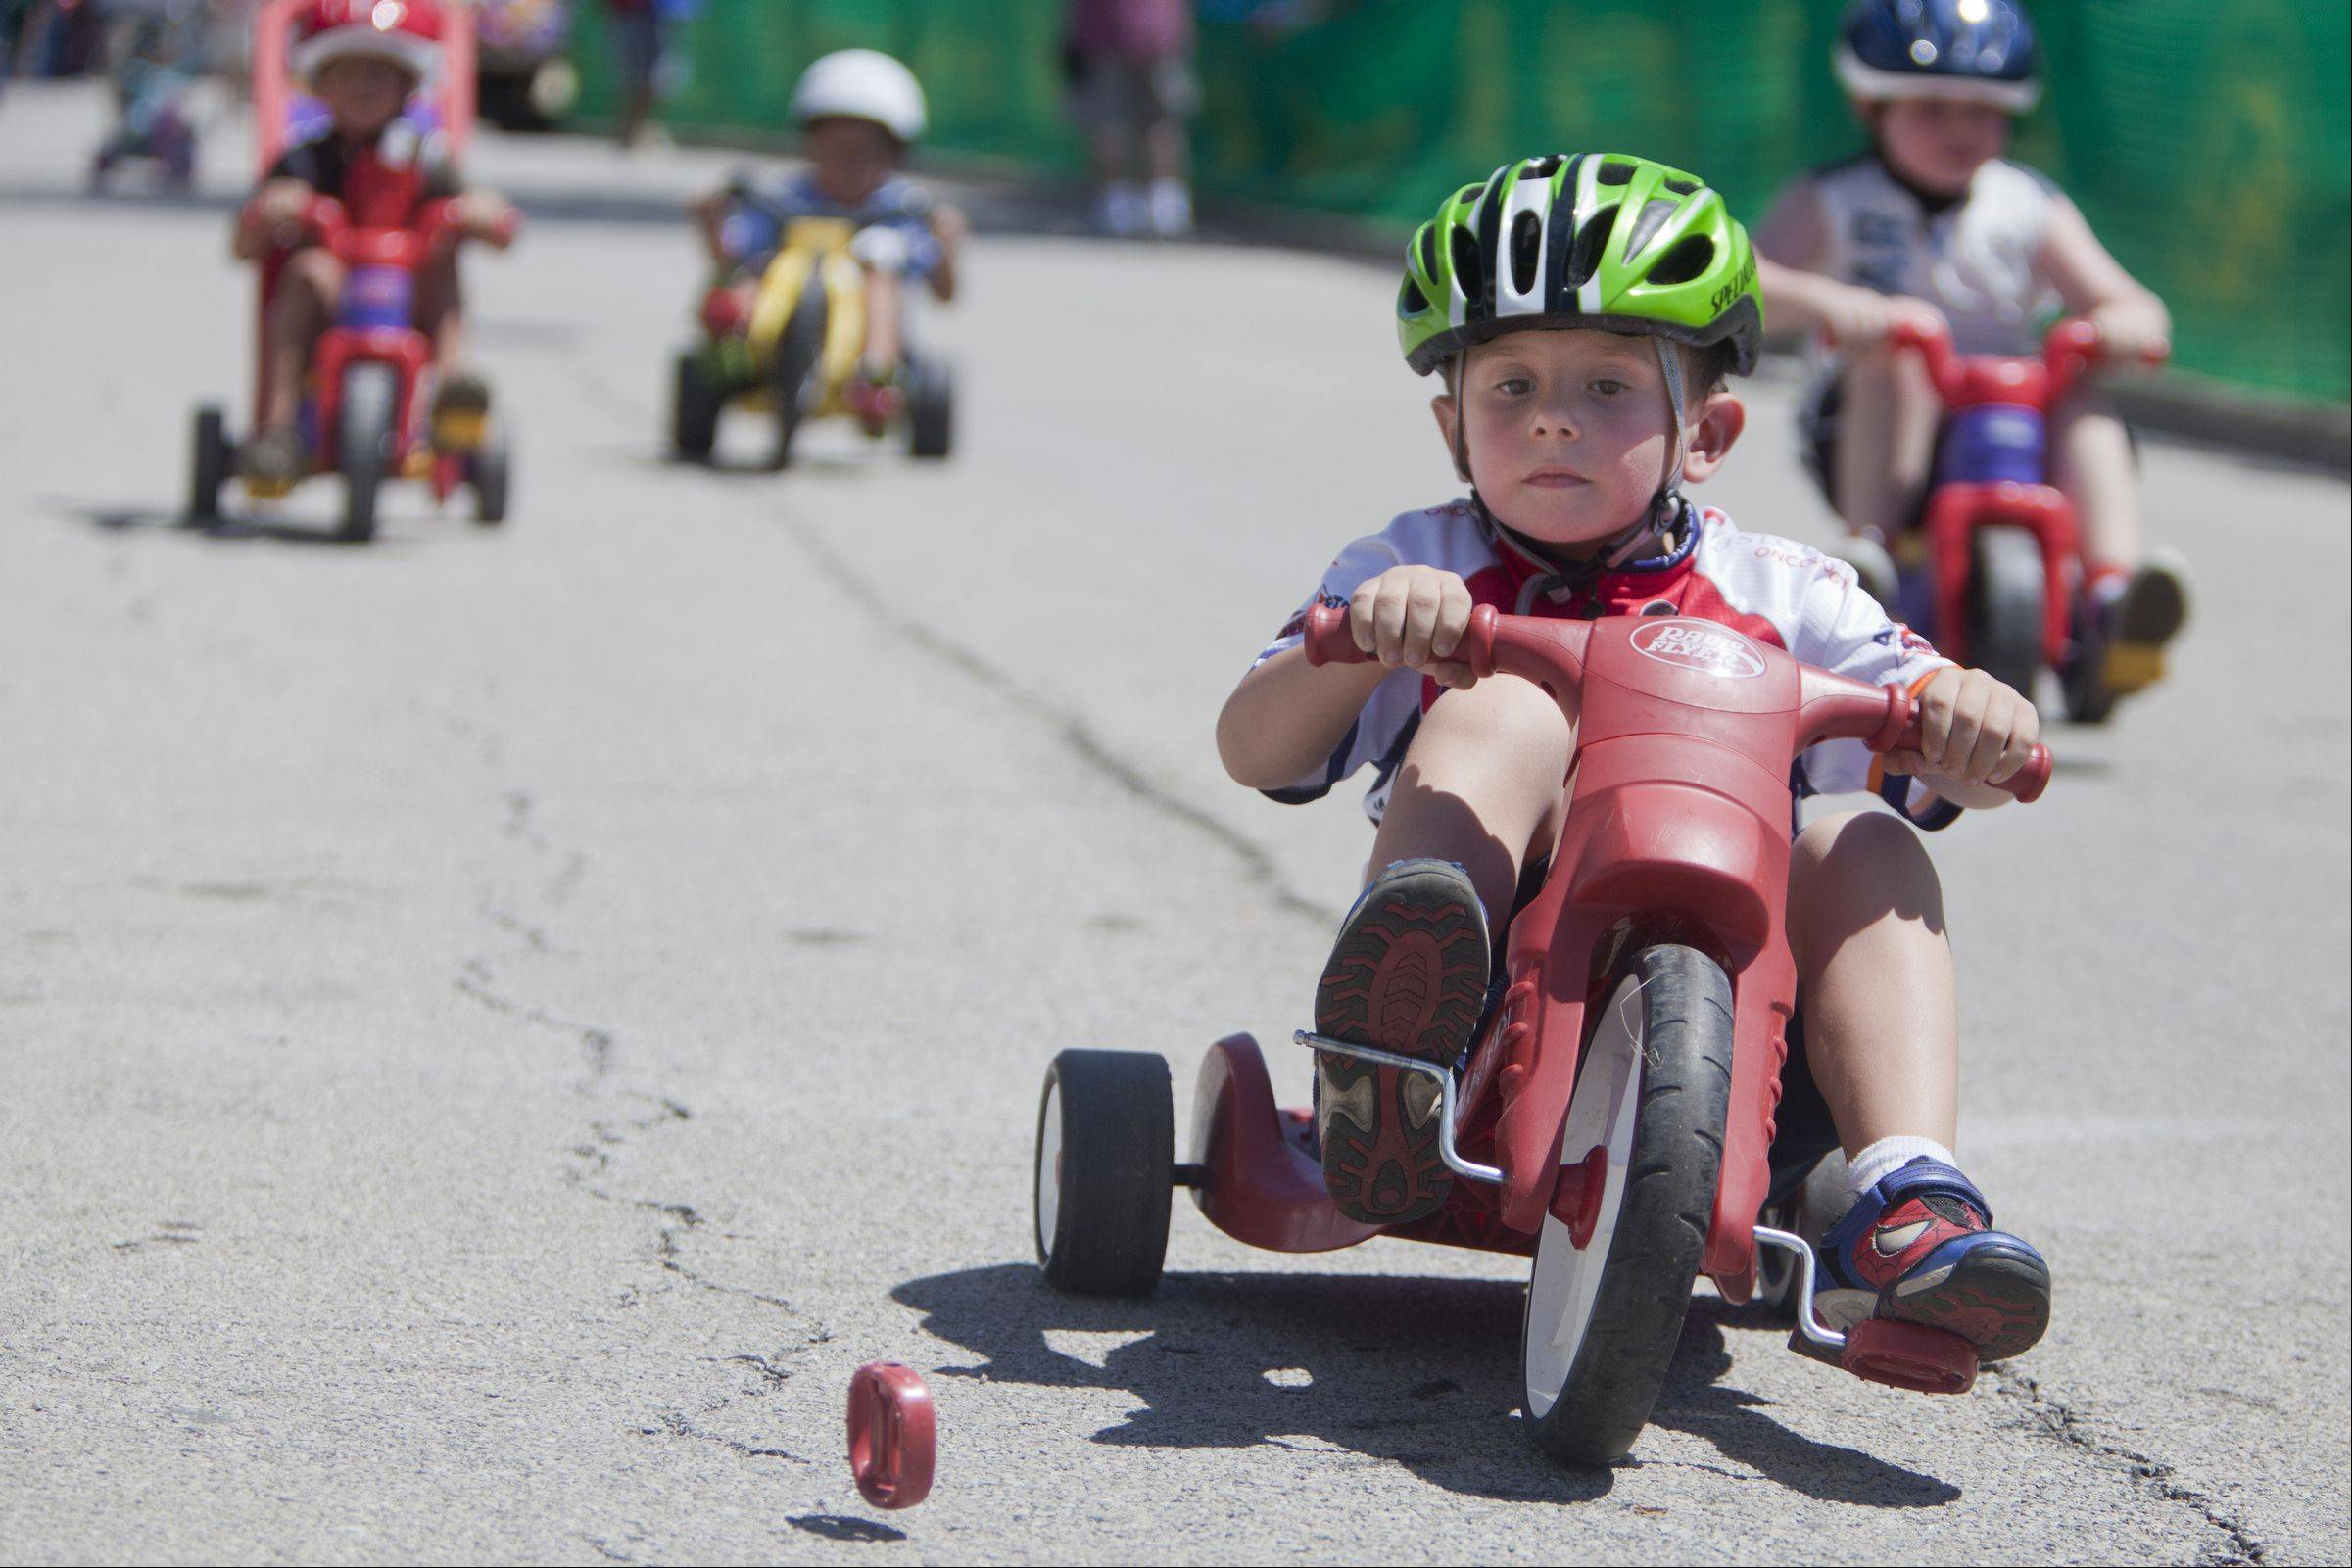 Five-year-old Matthew Curin of Lake Zurich finishes the Shimano 'big wheels' bike race without his right pedal during the third day of the Tour of Elk Grove.